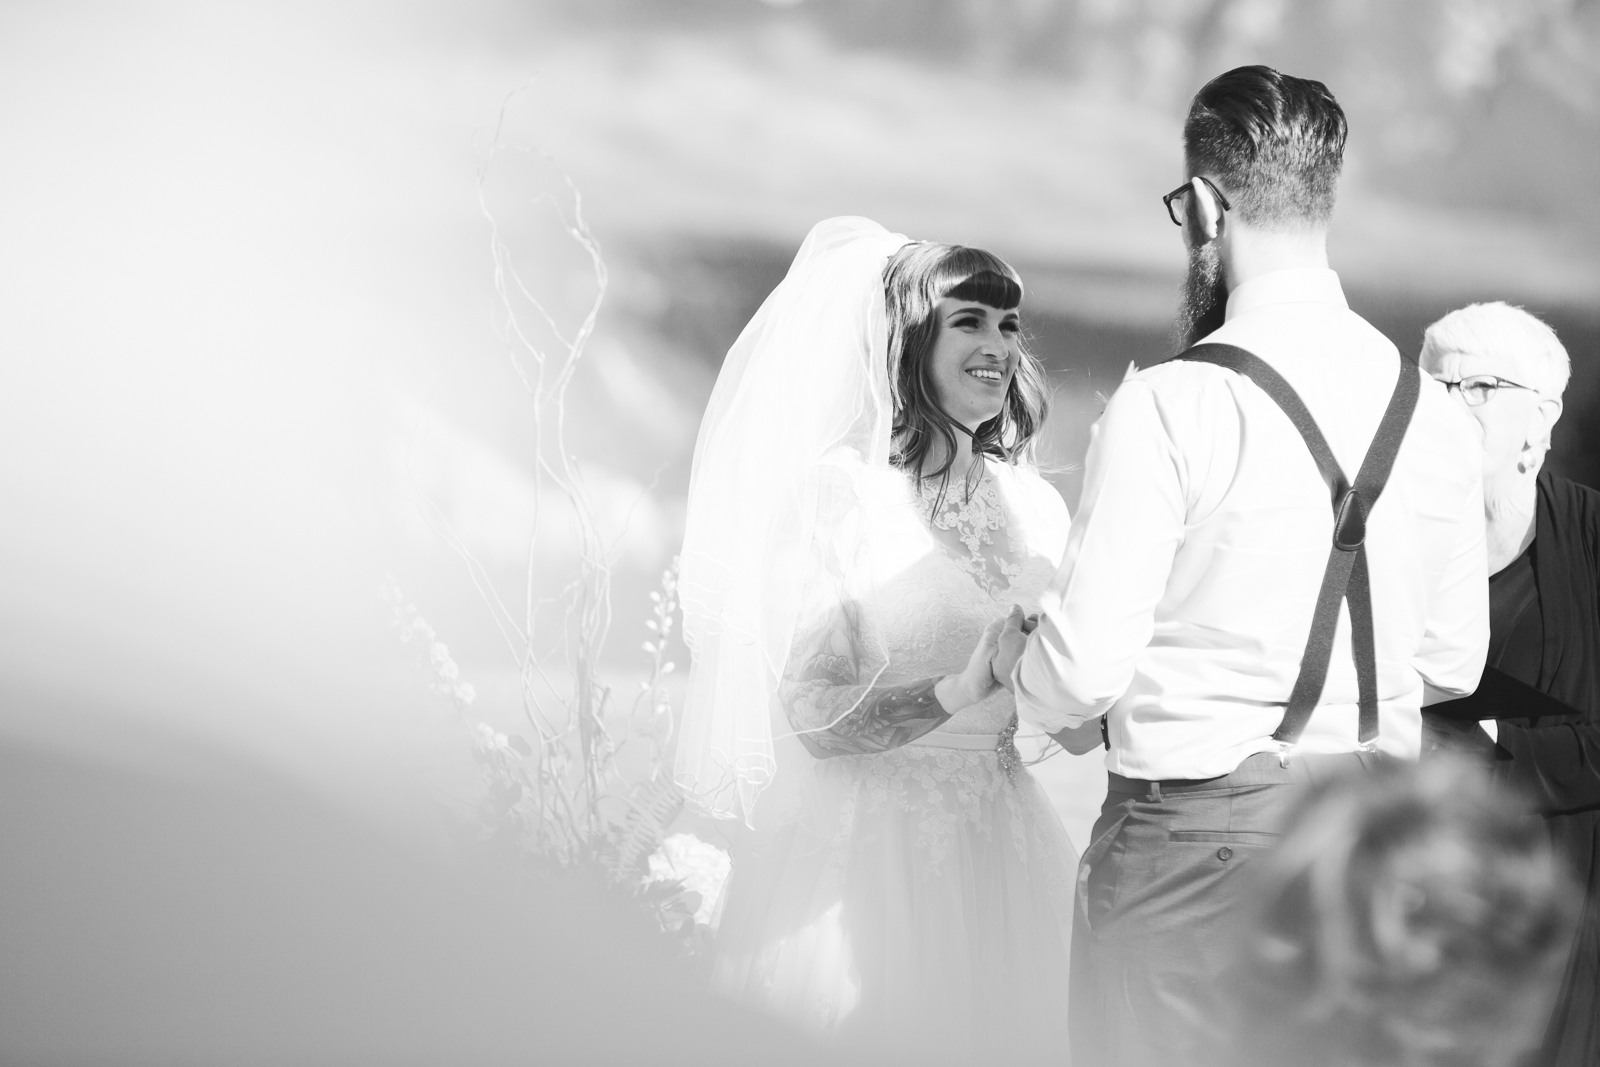 57-willow_and_wolf_photography_stephanie_and_kyle_banff_wedding_blogatp_8527